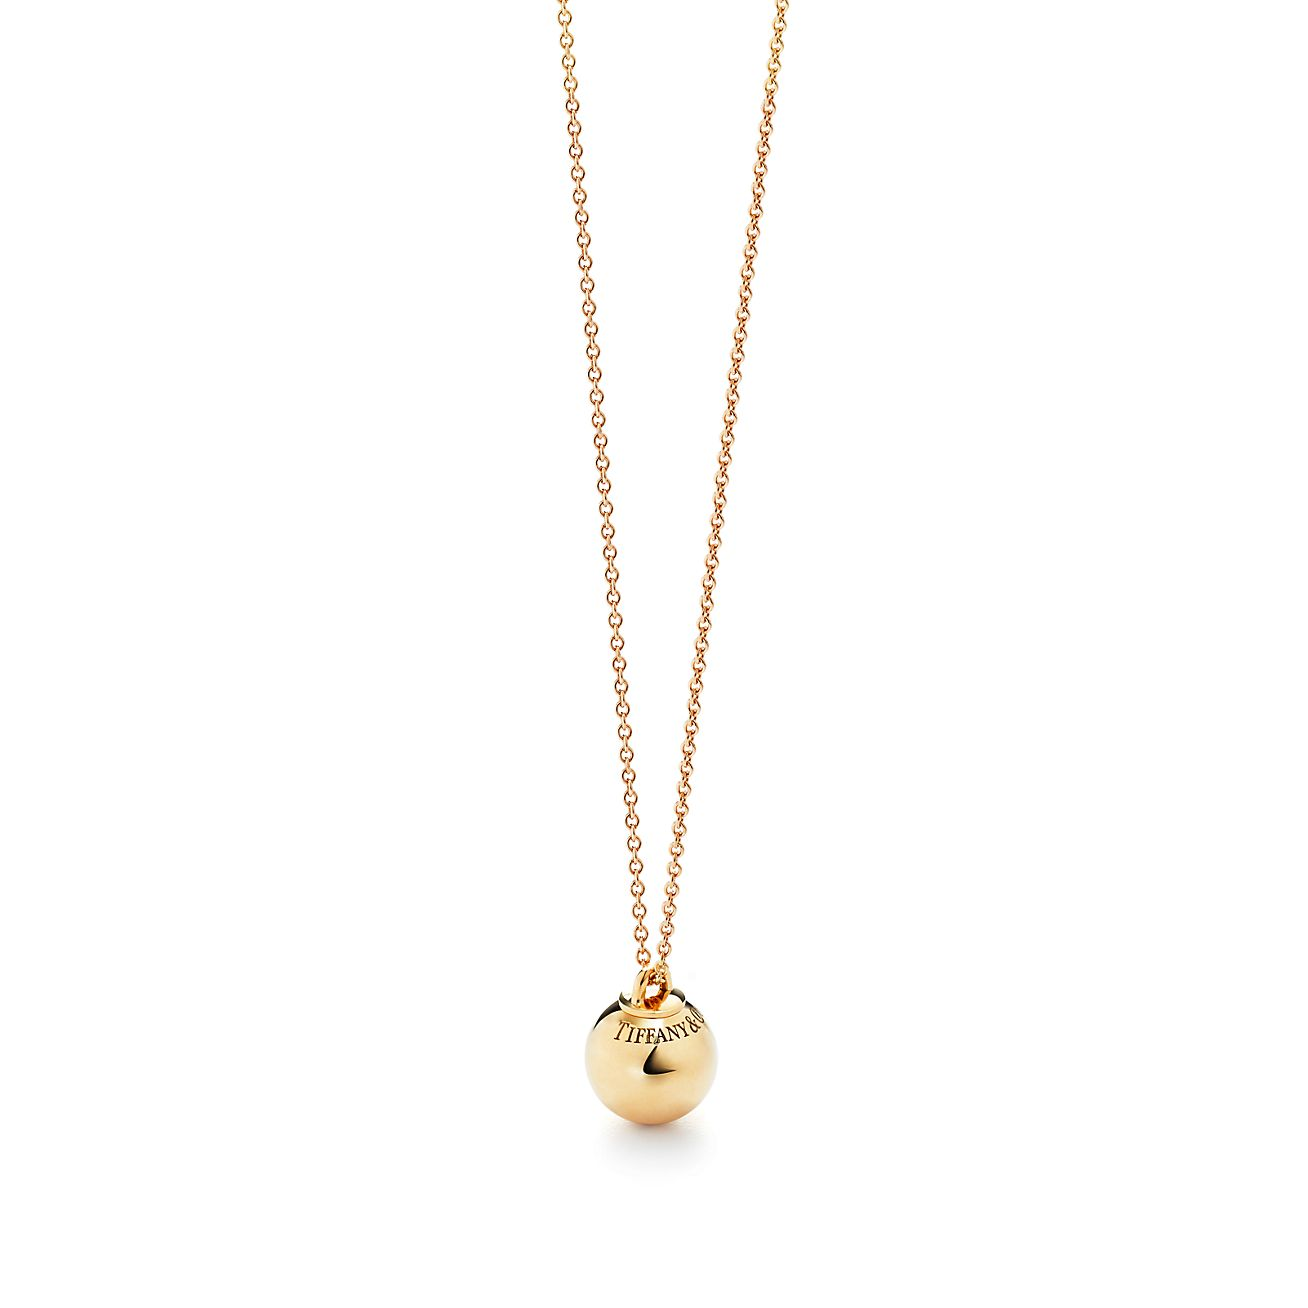 7ac1d08541c2 Shop Tiffany HardWear 18K Gold Ball Pendant